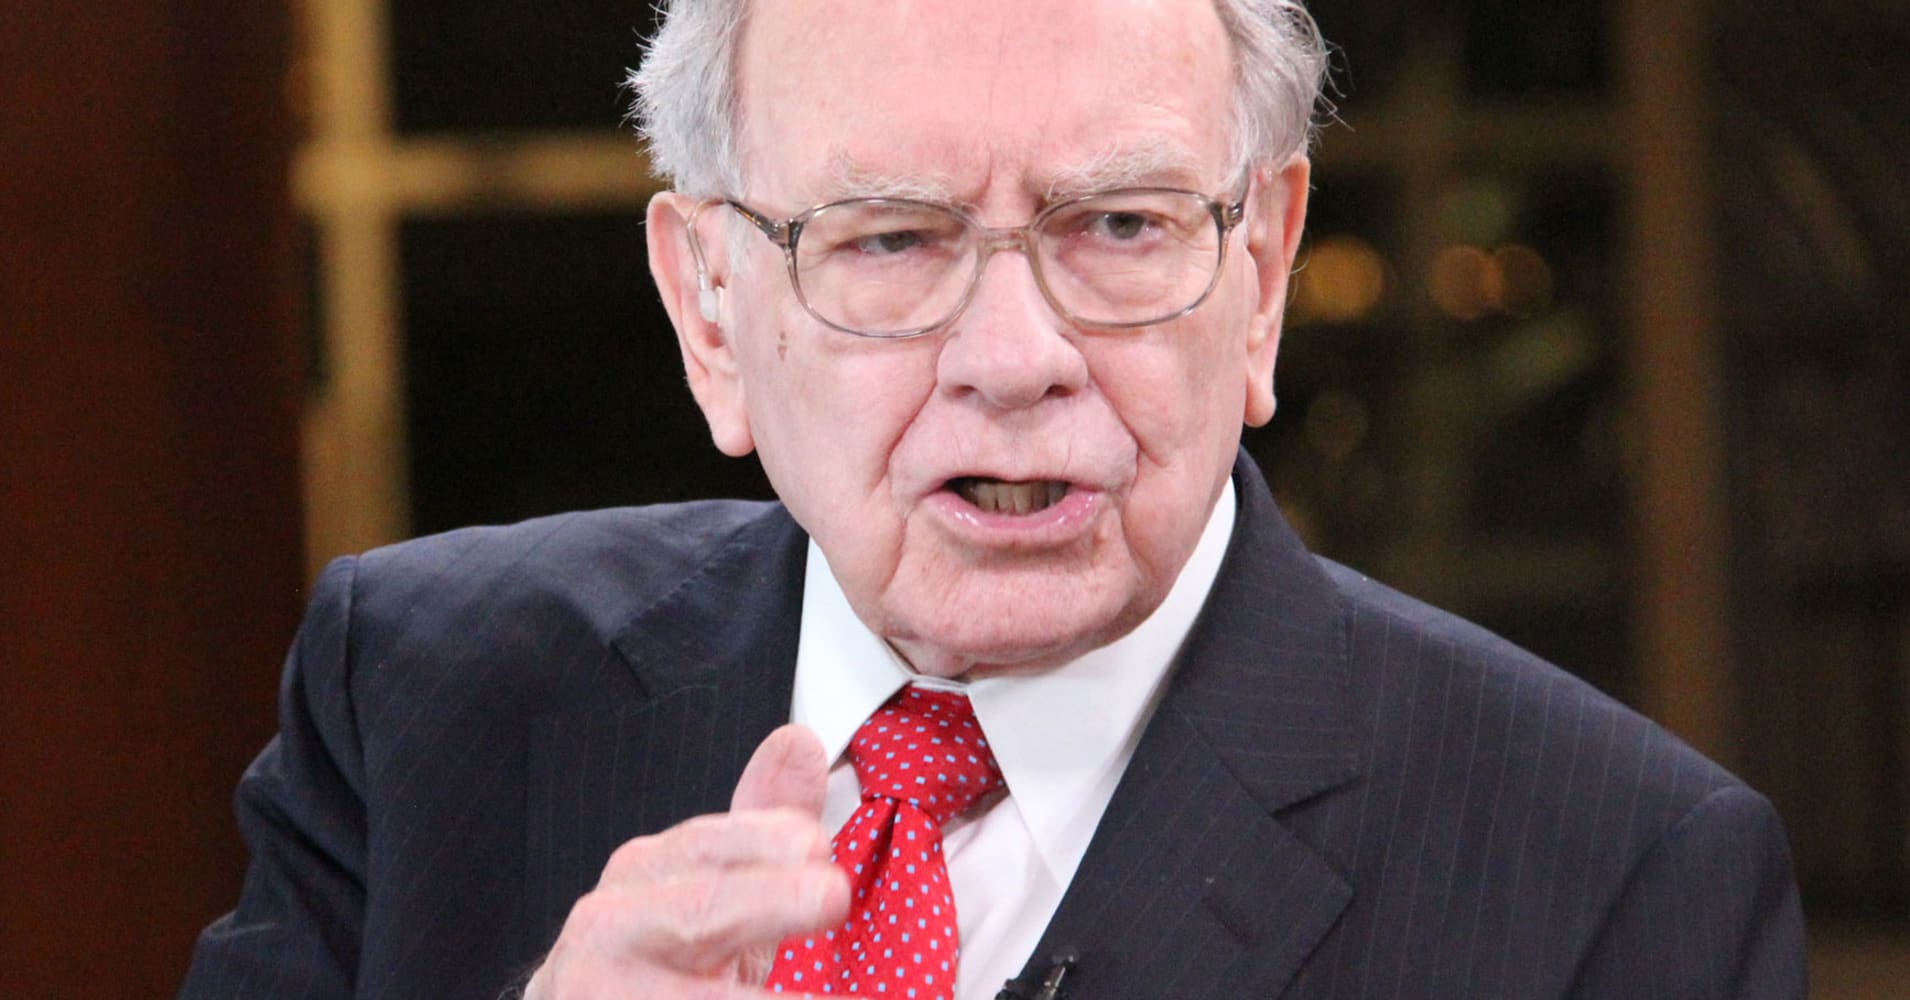 3 ways to invest like Warren Buffett as detailed in his annual shareholder letter